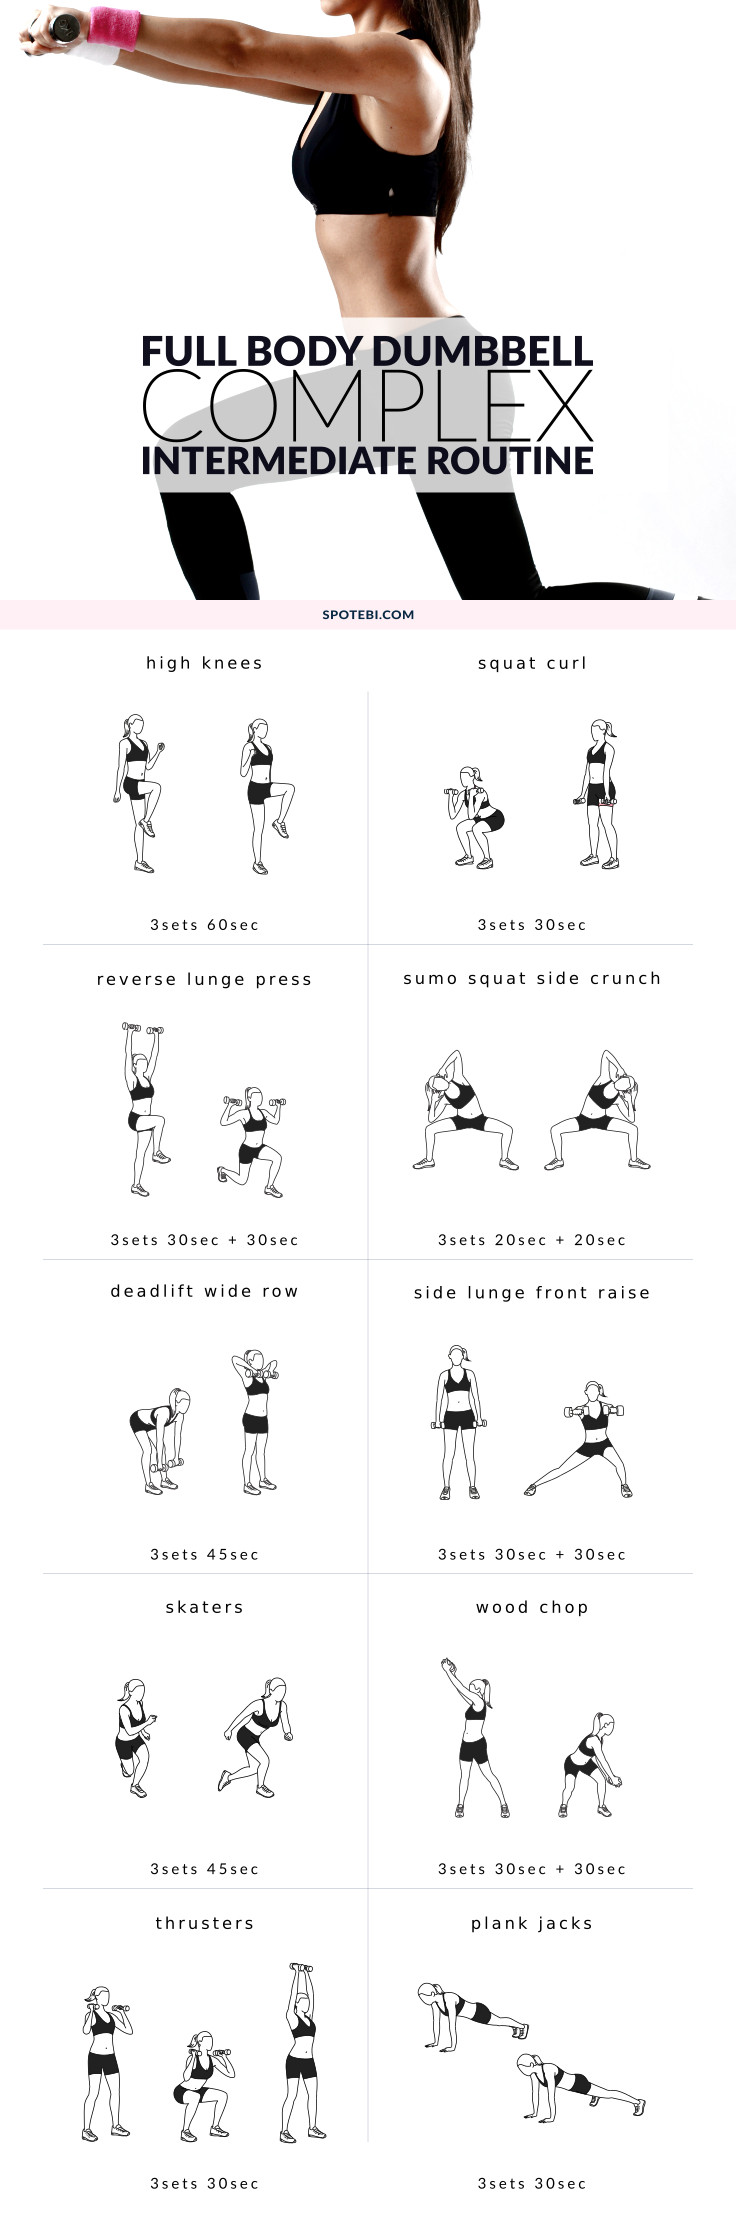 Maximize weight loss and jump start your metabolism with this full body intermediate dumbbell complex. Complexes are simply a series of full body exercises done back to back using weights, that can help you burn fat and speed up your metabolism during exercise and for hours afterward. https://www.spotebi.com/workout-routines/full-body-dumbbell-complex-women/